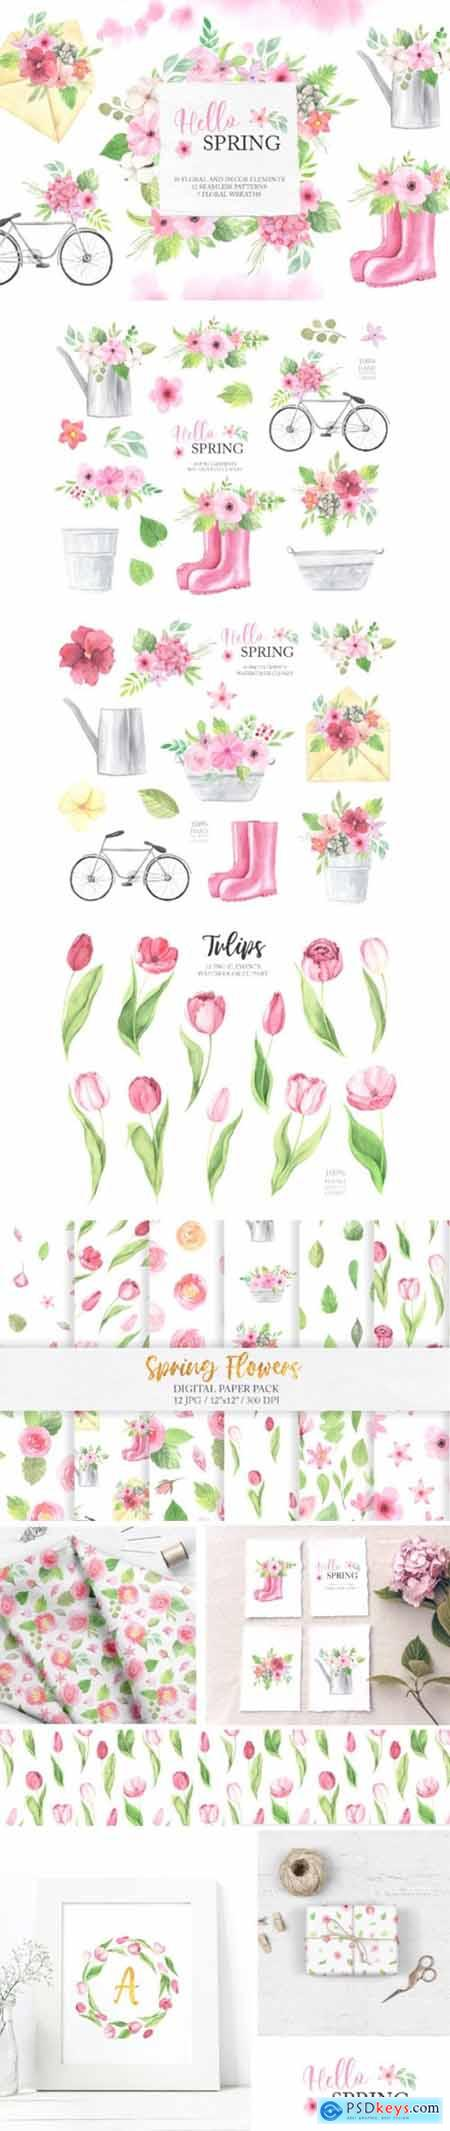 Watercolor Spring Floral Collection 3676809